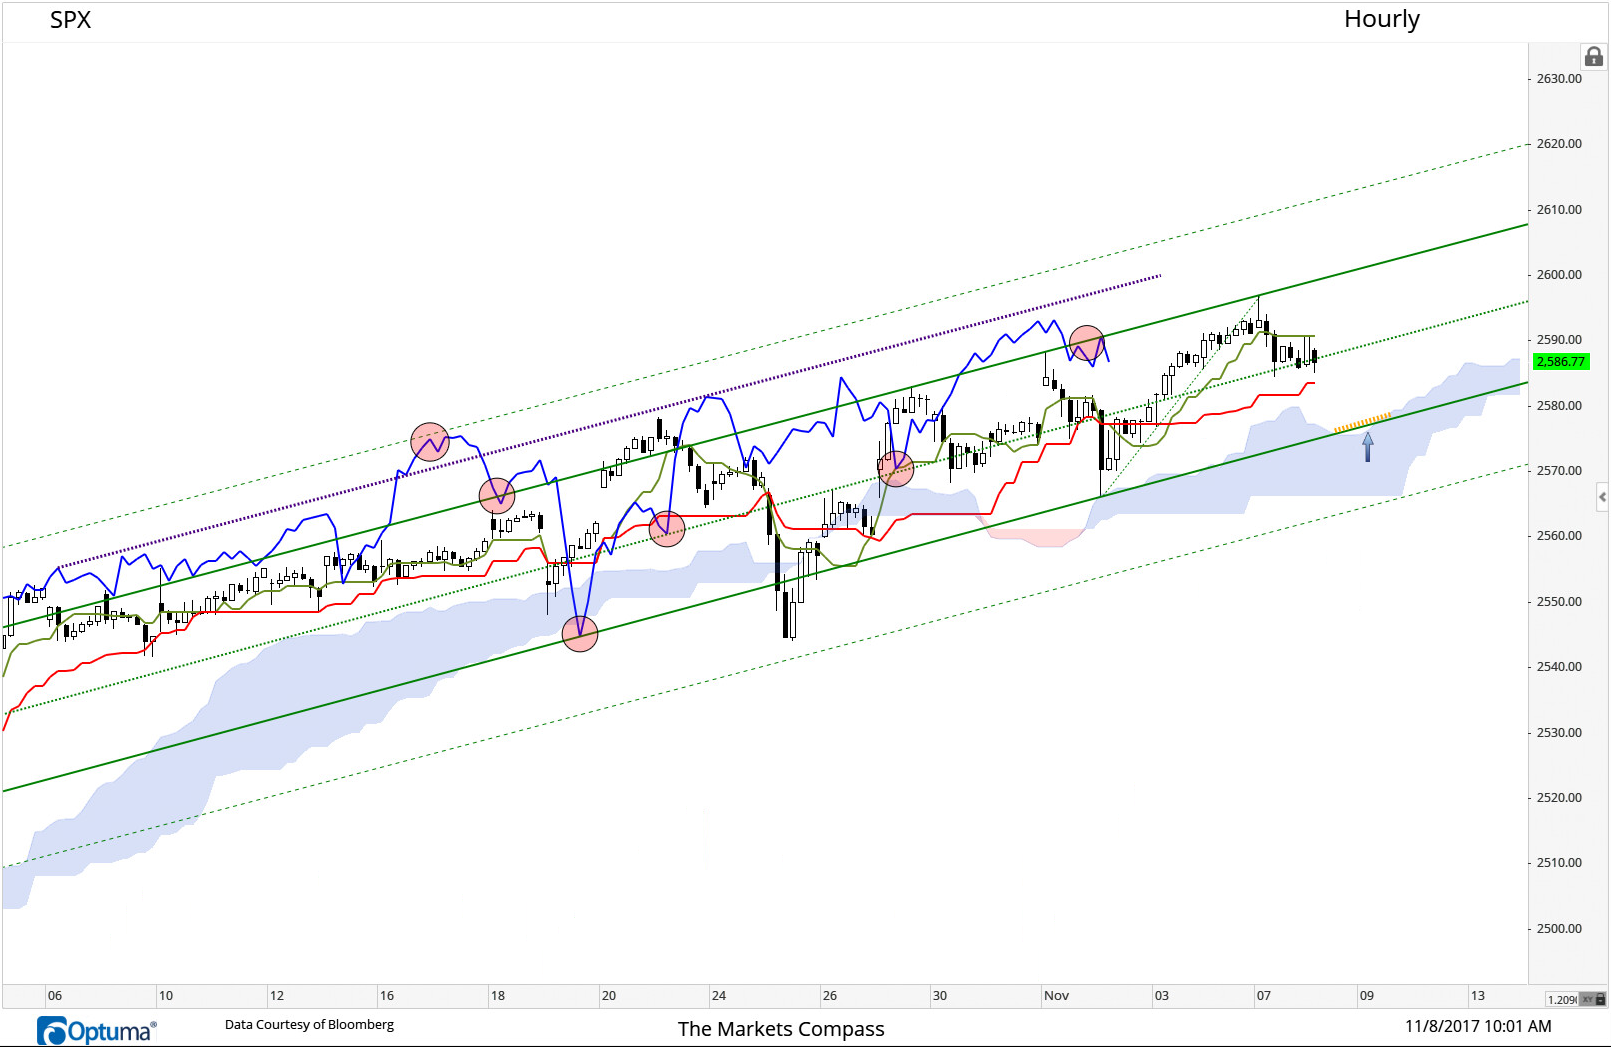 For all intents and purposes The SPX (Hourly) has been able to hold at support afford by the Schiff Modified Picthfork Median Line (green dashed line). If support at this level gives way next stop will be yellow dash line (marked with blue arrow) that marks Lower Parallel and Cloud support. The Chikou Line (lagging line/closing price shifted 26 bars back) has fallen through the Upper Parallel and has been unable to re-take the ground above it, rapping it's head twice (last red circle).This may be signaling further weakness.